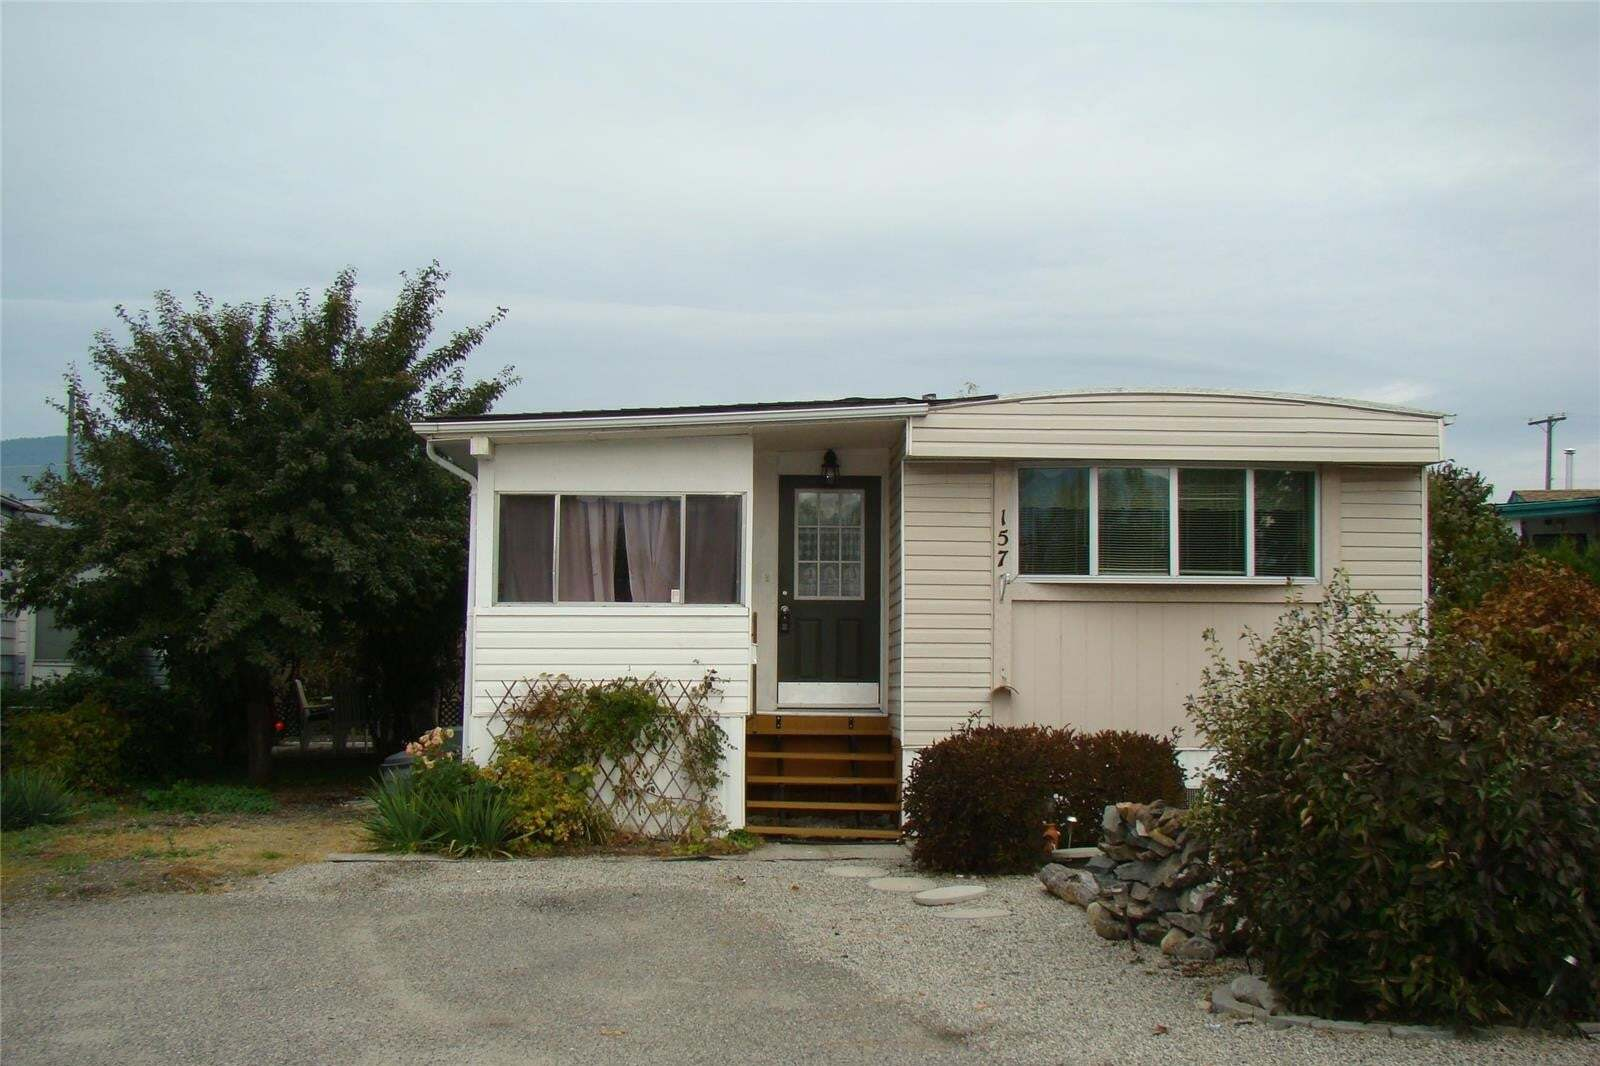 Residential property for sale at 1880 Old Boucherie Rd Westbank British Columbia - MLS: 10192972